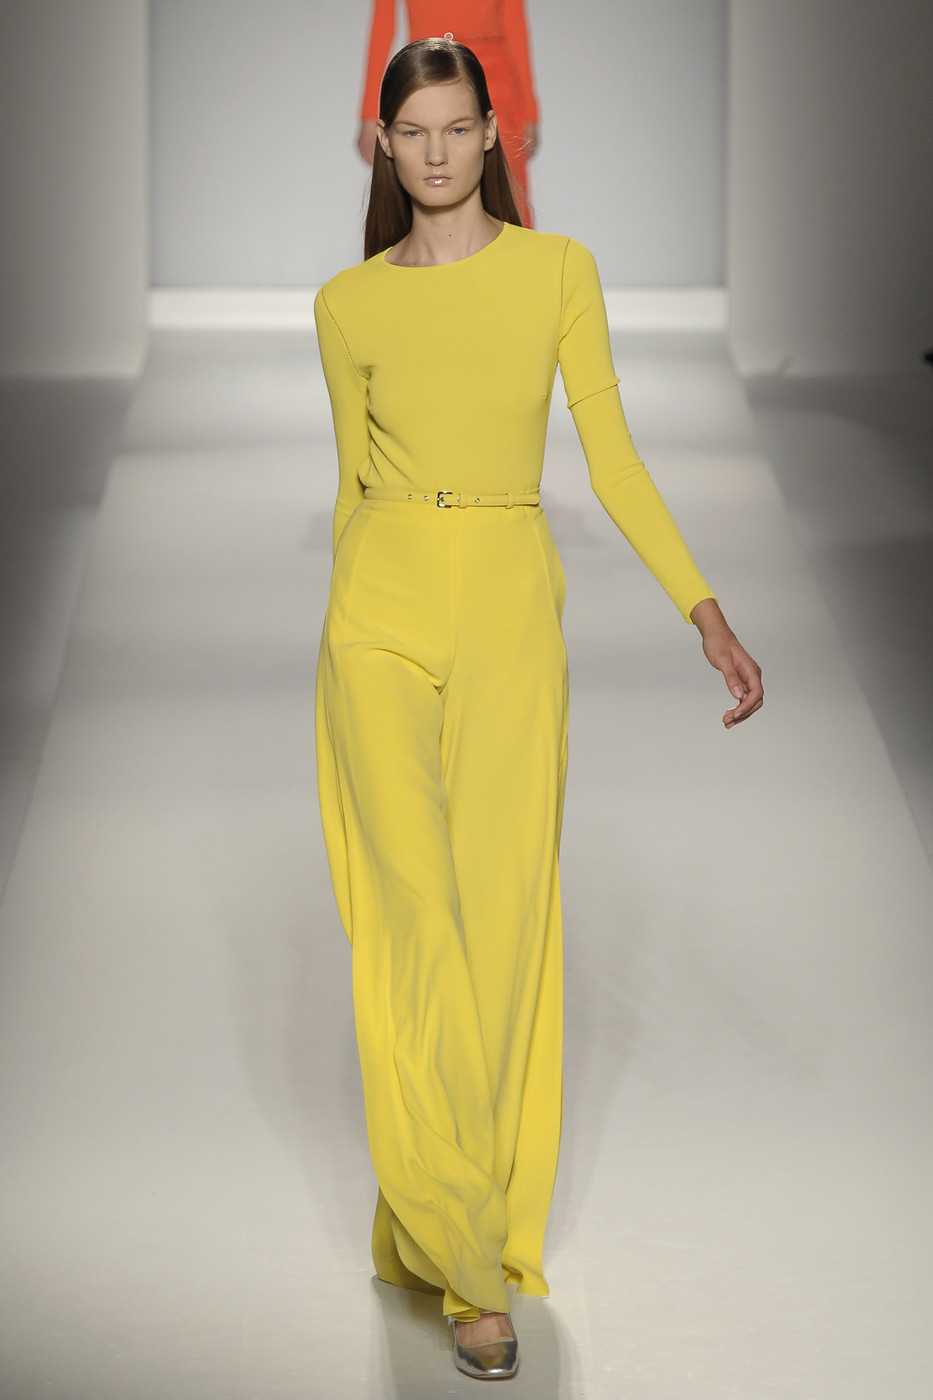 via fashioned by love | Max Mara Spring/Summer 2011